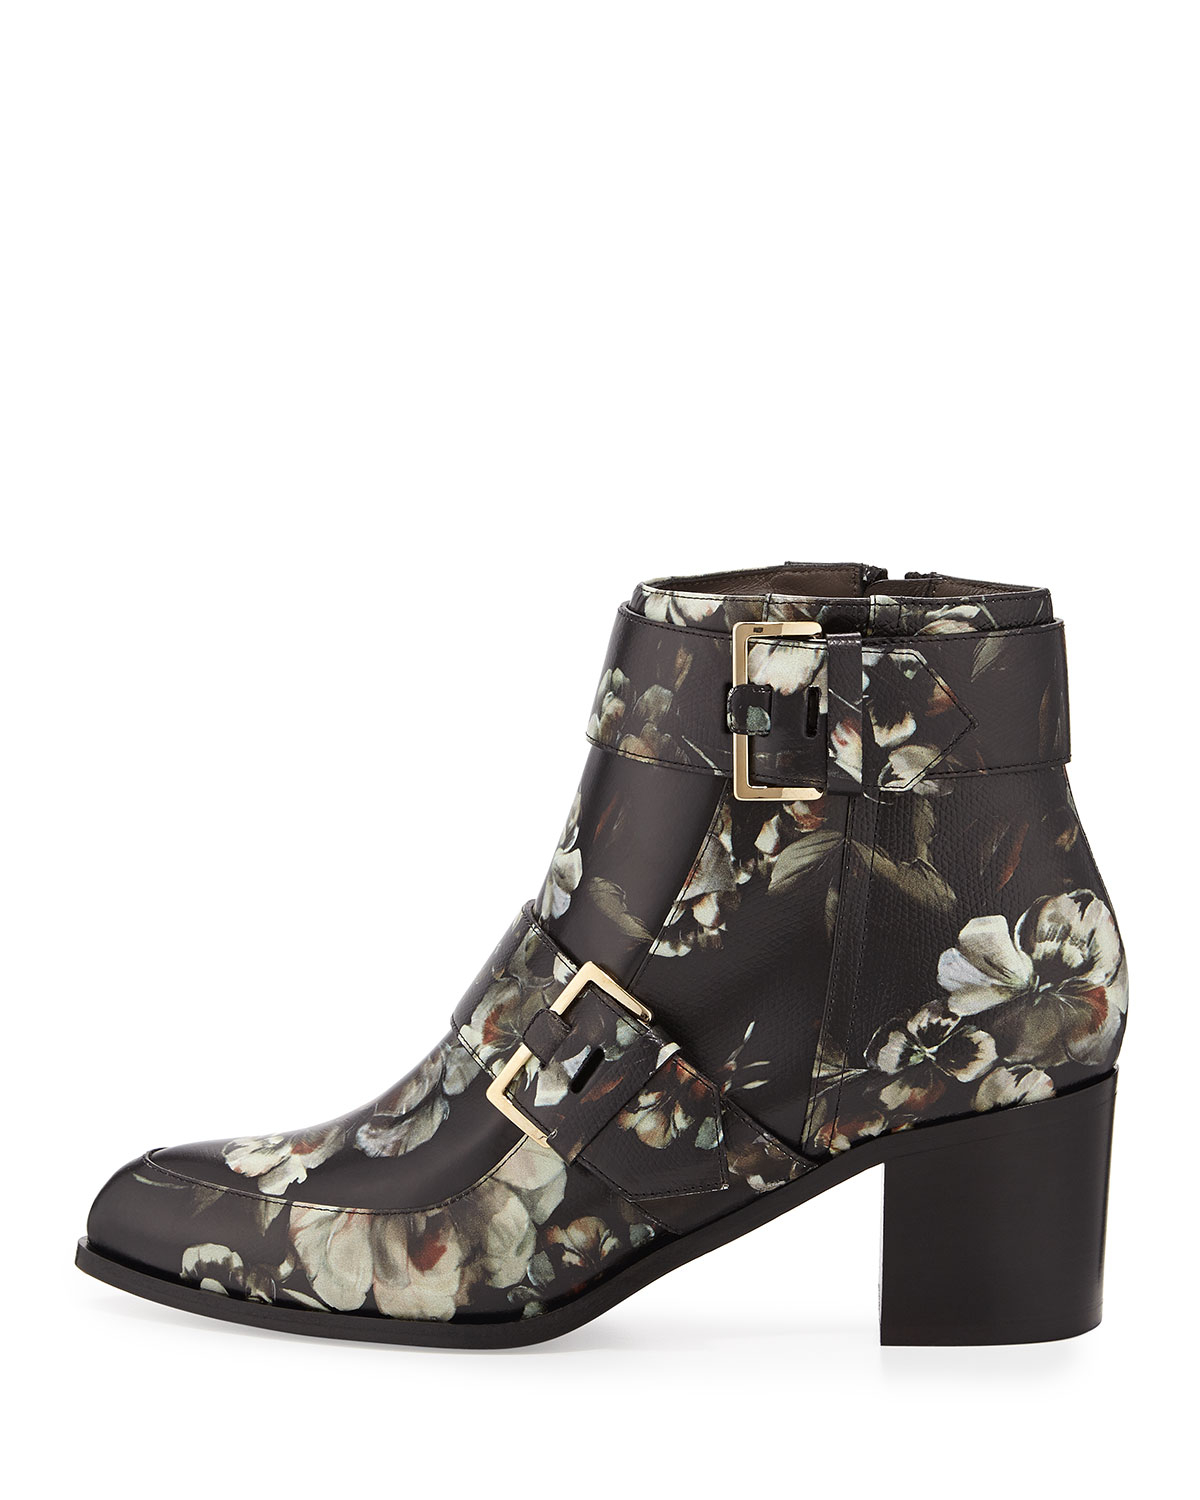 clearance Inexpensive Jason Wu Ponyhair Ankle Boots Inexpensive for sale get to buy sale online original for sale RRJlC